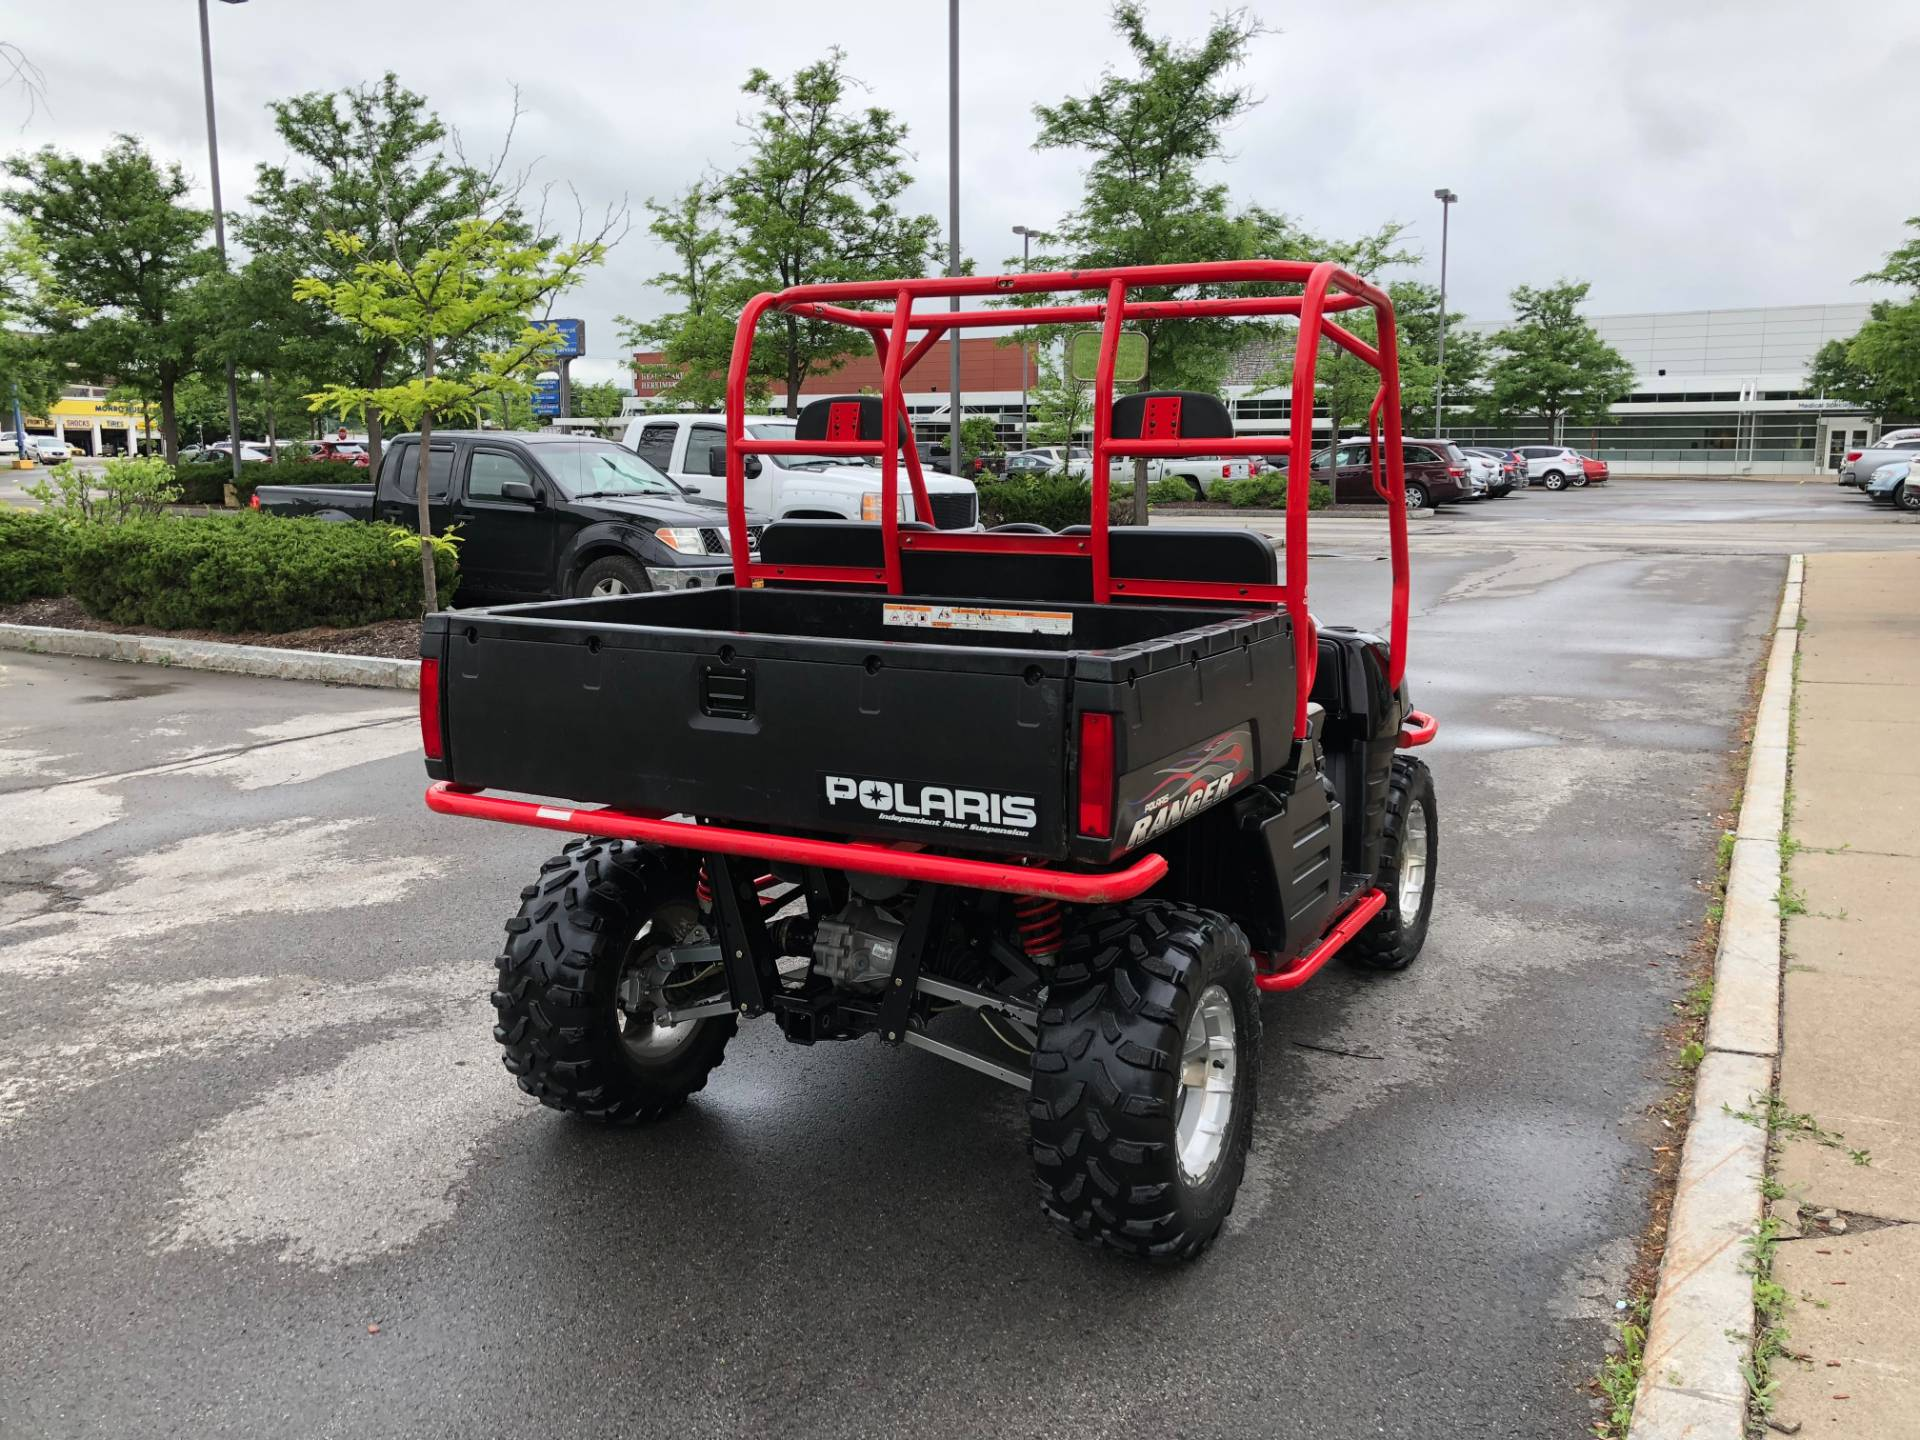 2007 Polaris Ranger XP Midnight Red Limited Edition in Herkimer, New York